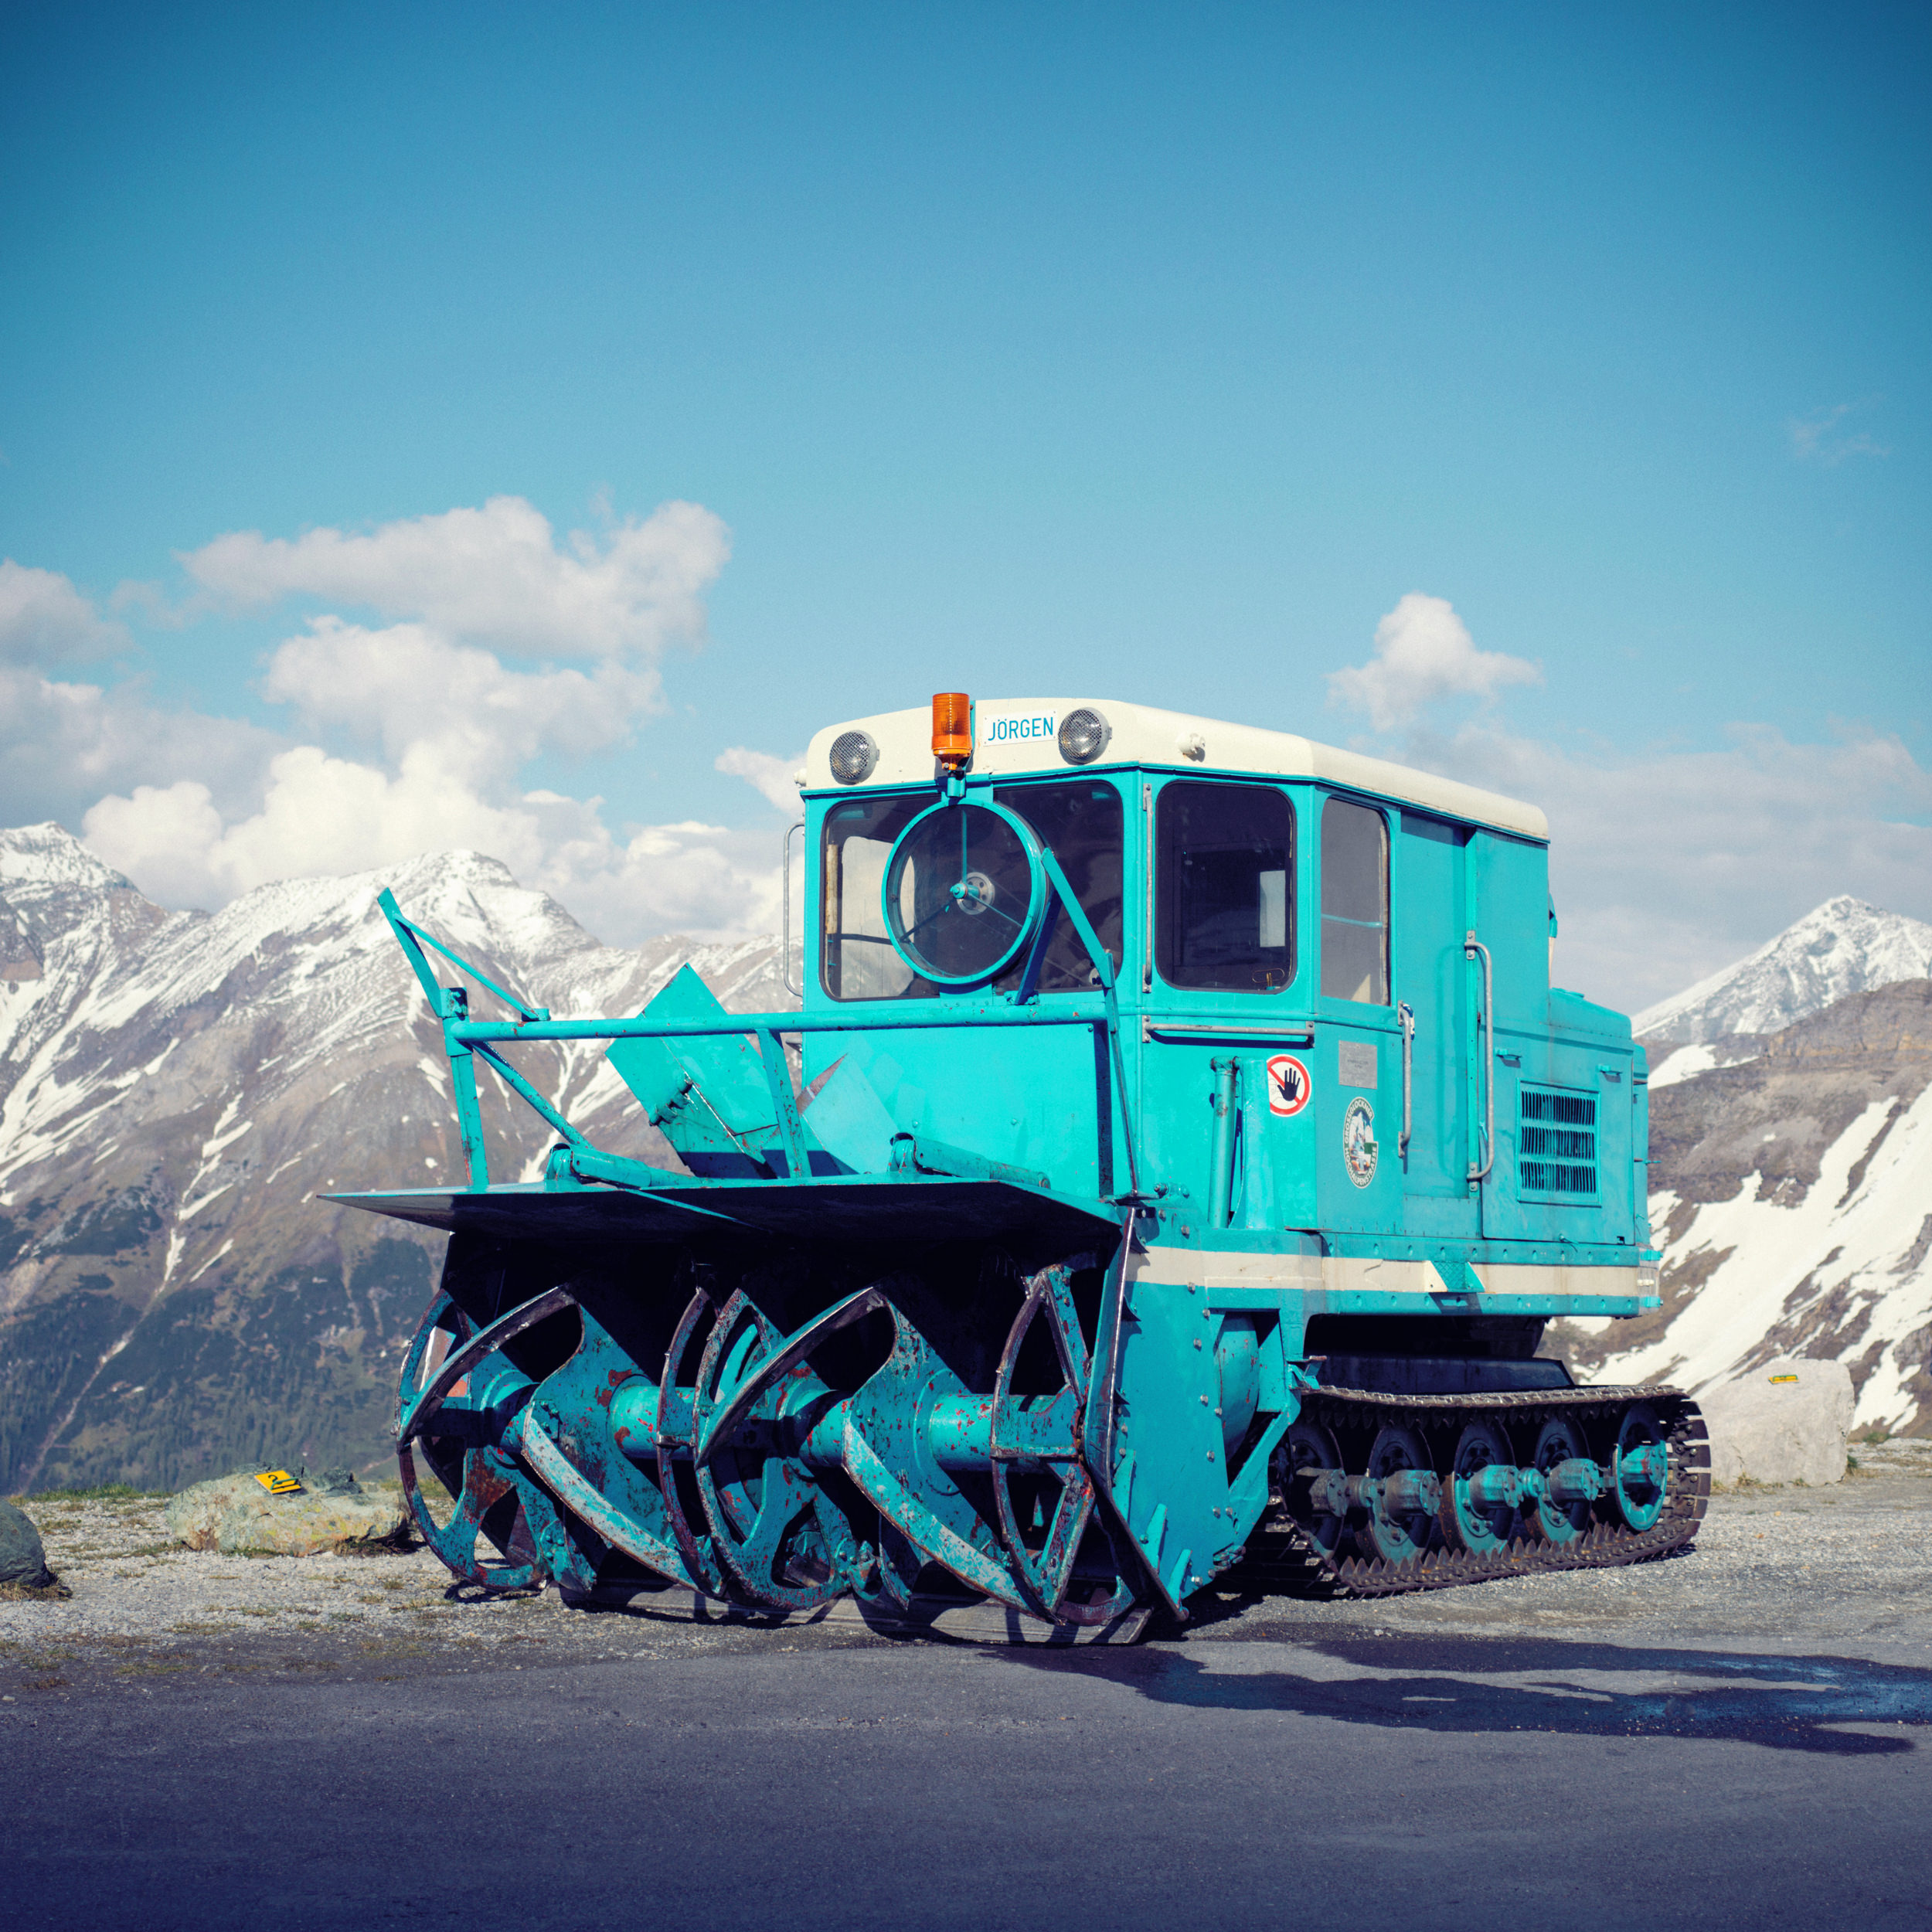 They use this monsters to cut a road into the snow.